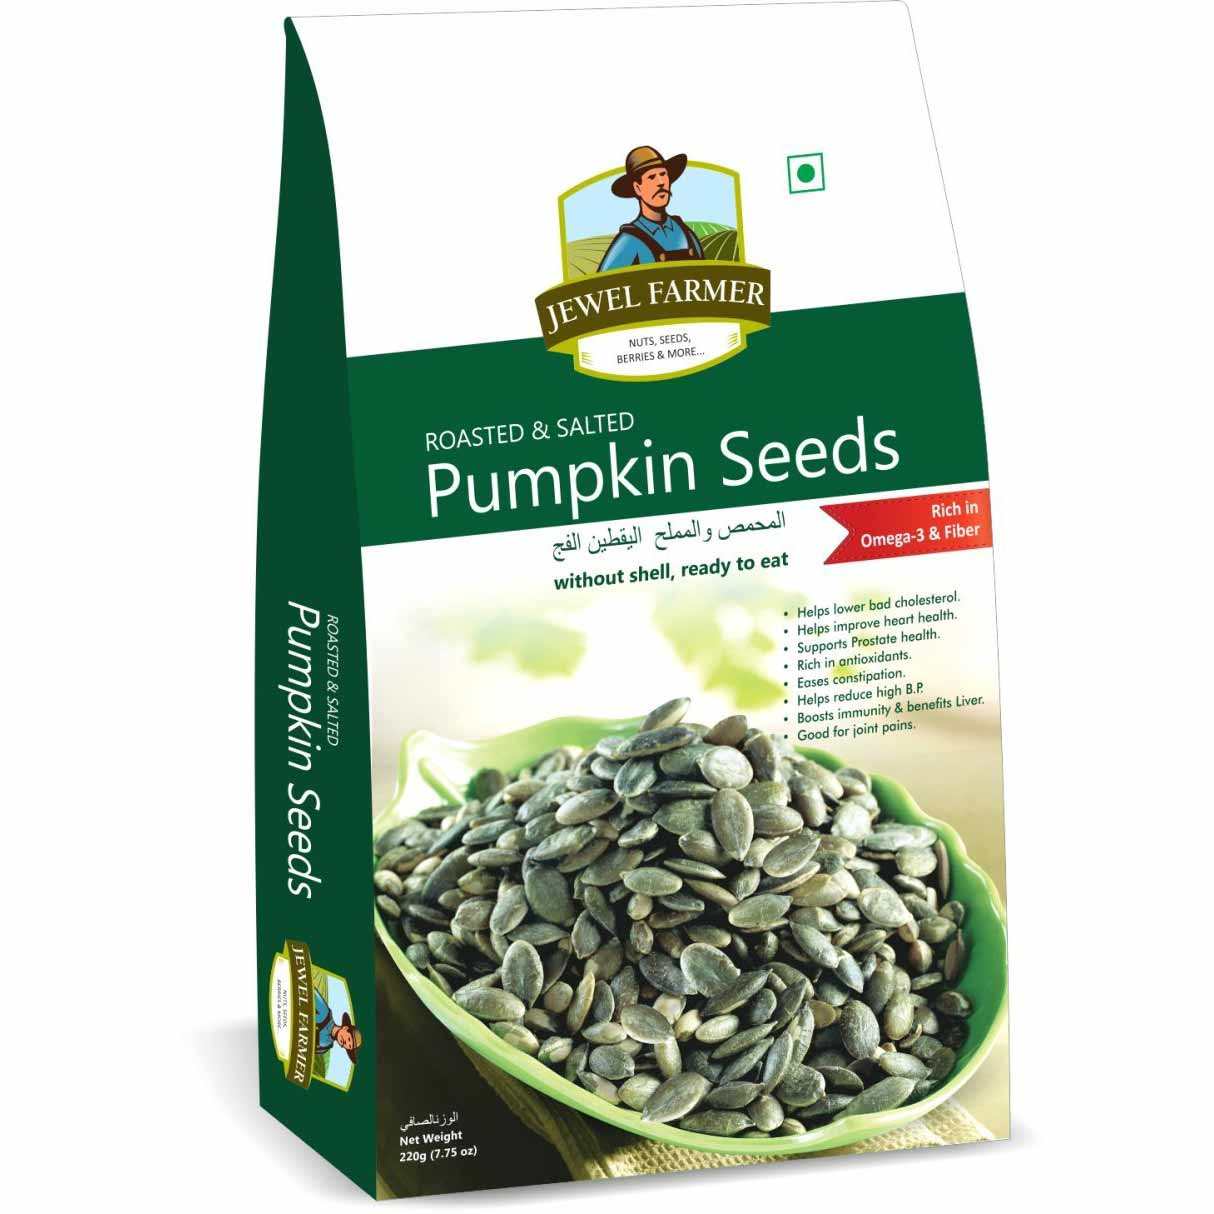 Jewel Farmer Pumpkin seeds 220 gm